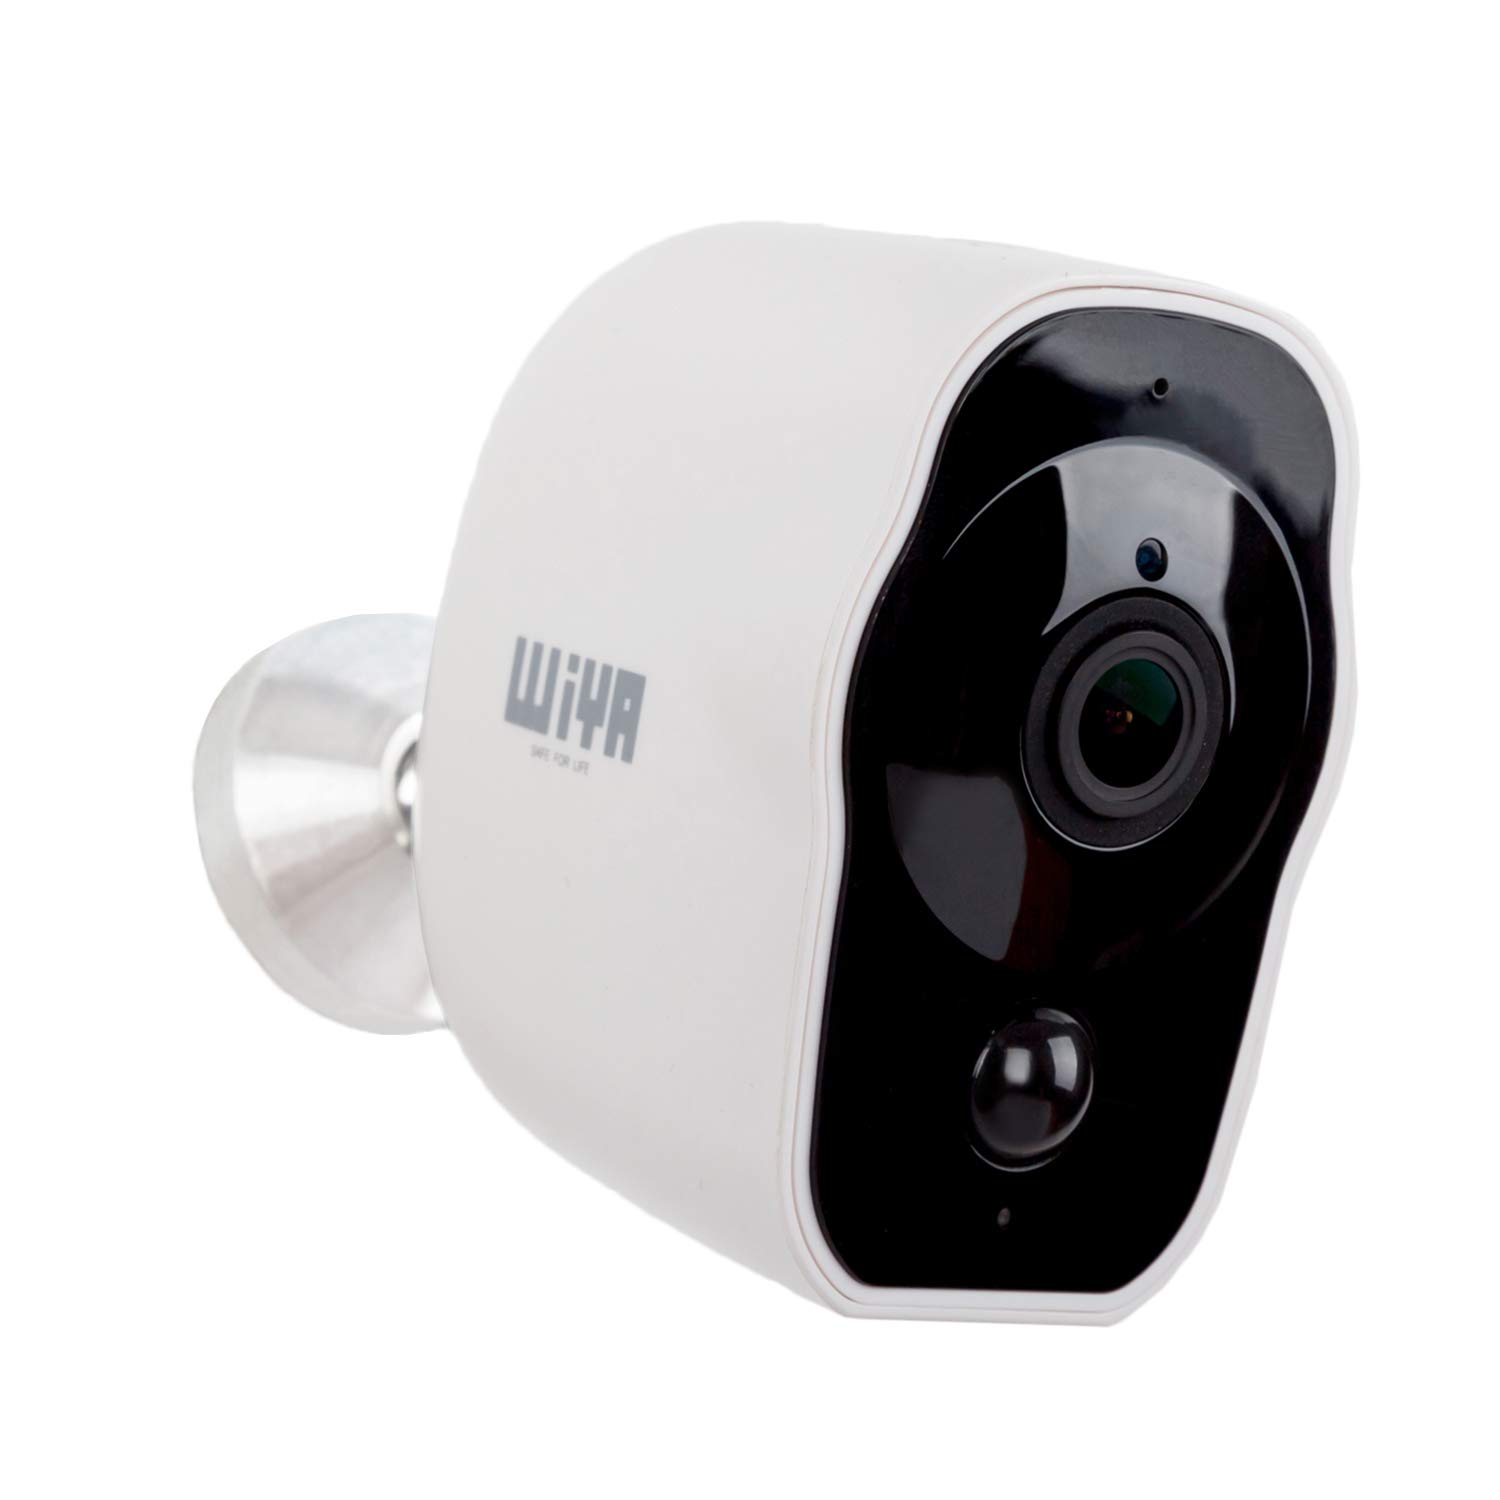 Wireless Rechargeable Battery Powered Camera, WiYA 2.4G WiFi Wire-Free Security Camera HD for Outdoor/Indoor, Home Surveillance Camera with Waterproof丨2-Way Audio丨Night Vision丨PIR Motion Sensor by WiYA